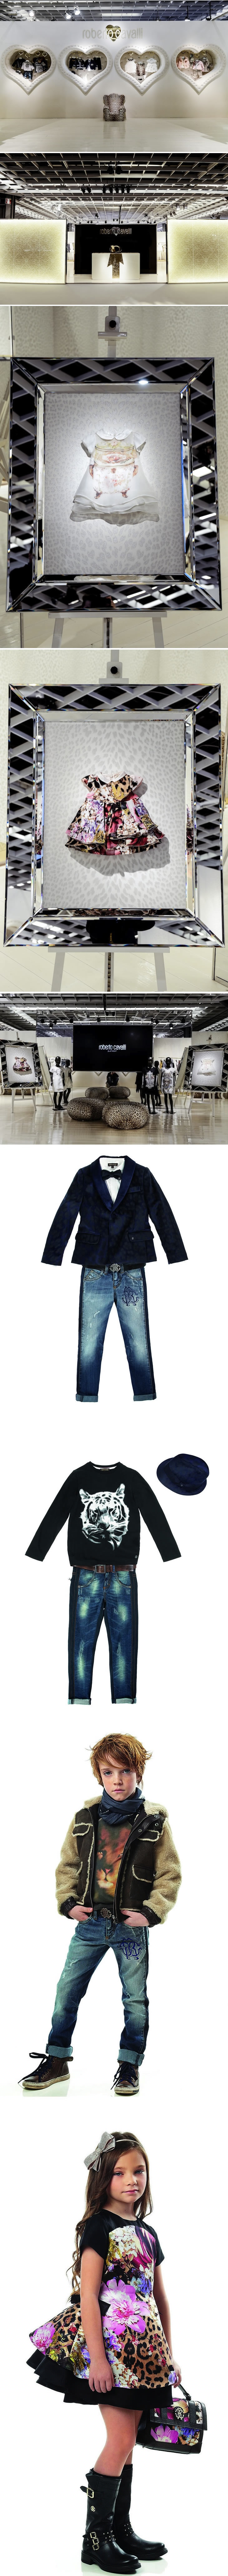 Roberto Cavalli Junior and Newborn Fall-Winter 2013-14 Collection